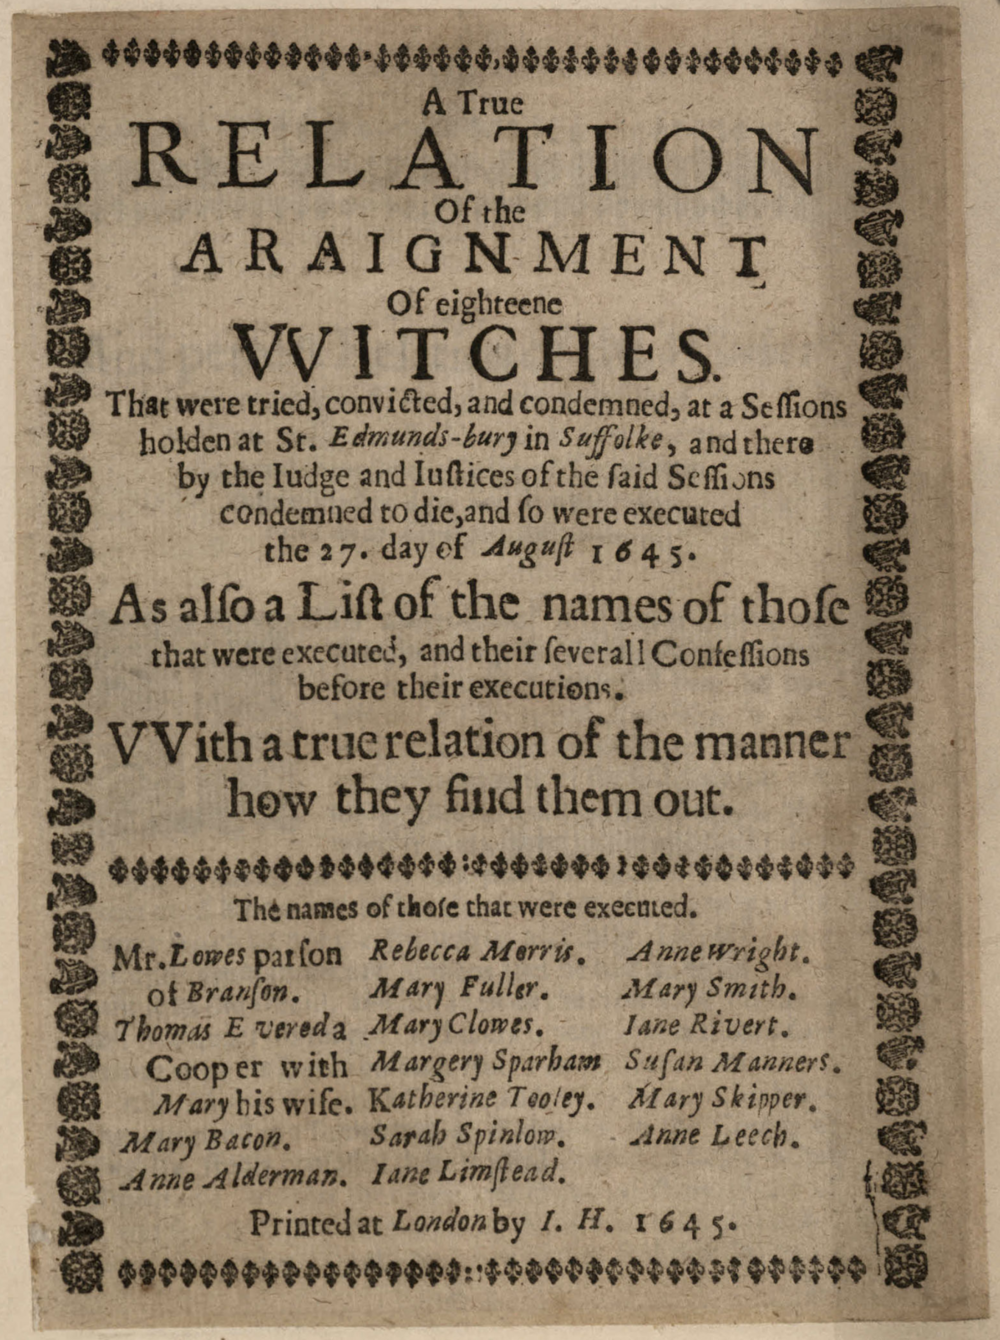 A True Relation of the Araignment of eighteene Witches 1645 -  Click here  to read